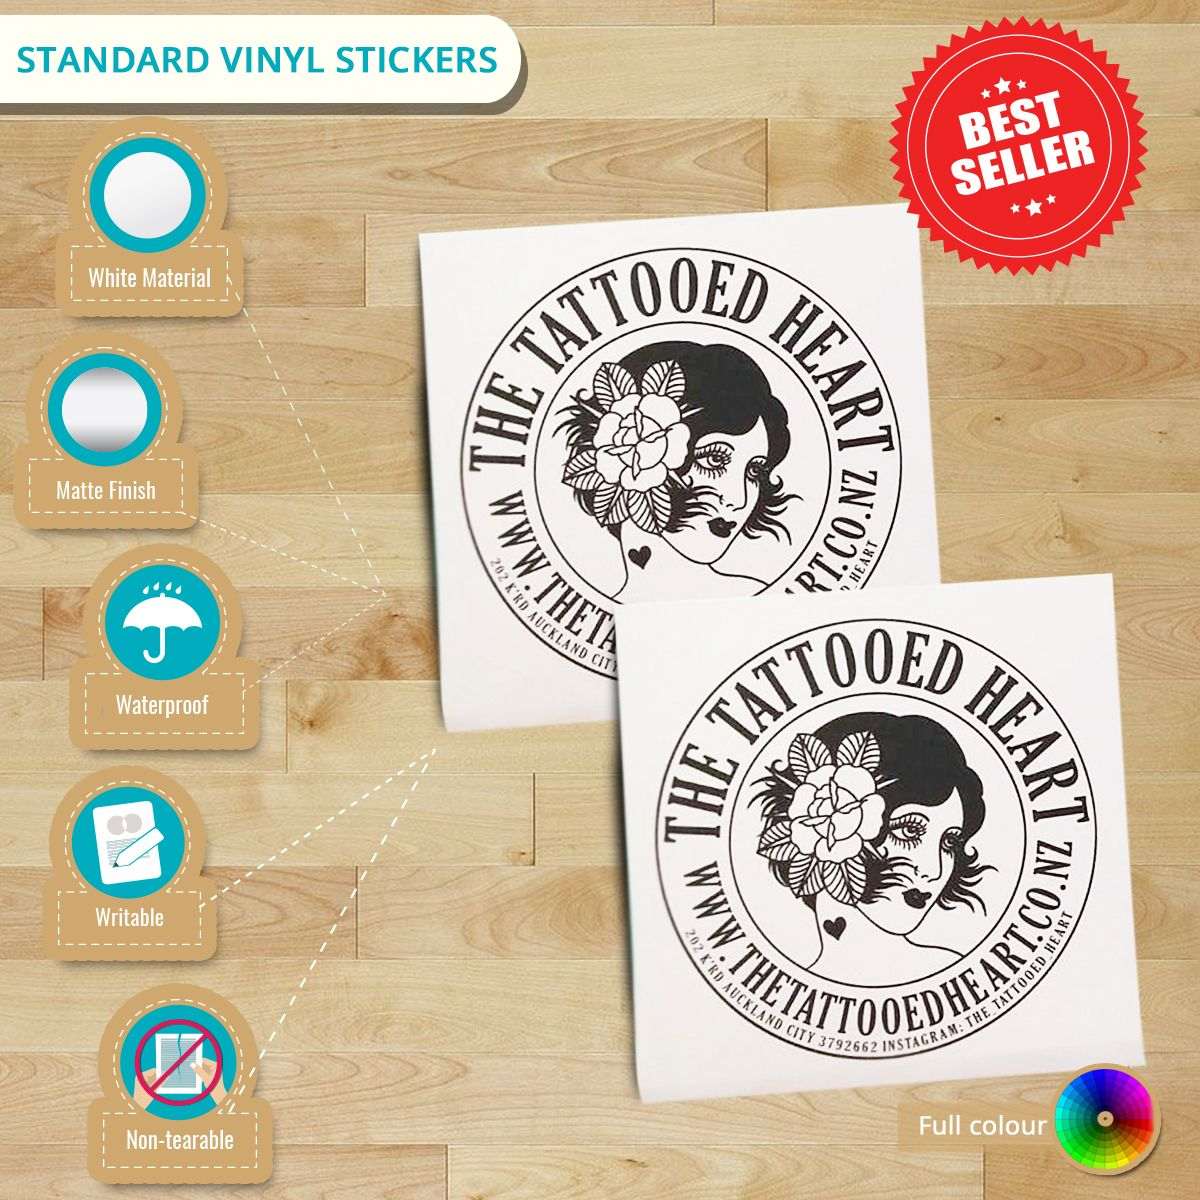 Infographic featuring standard vinyl stickers discover more details with our vinyl stickers from here